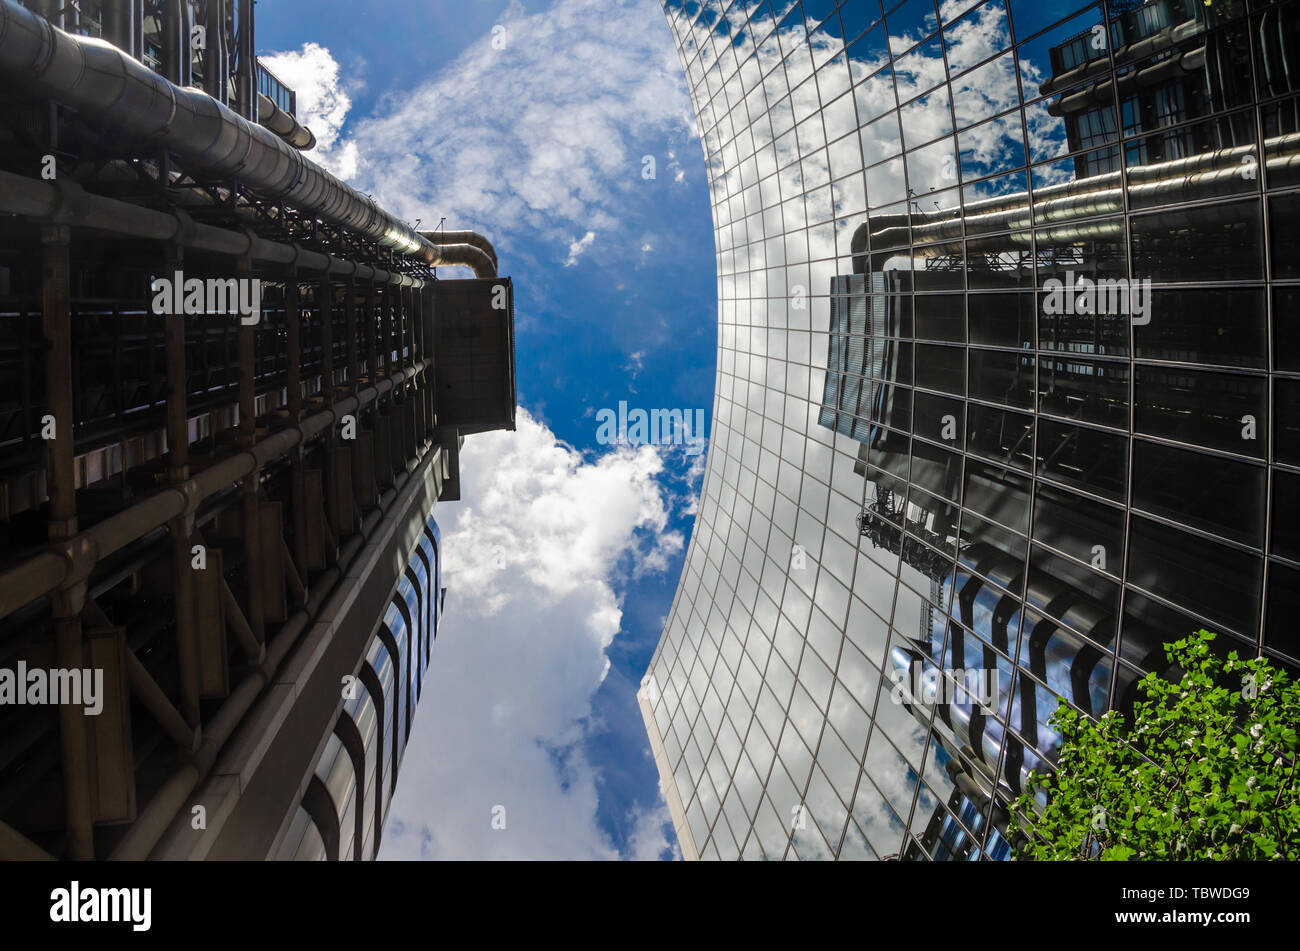 looking-up-at-the-willis-building-and-lloyds-of-london-building-in-the-financial-district-of-the-city-of-london-TBWDG9.jpg